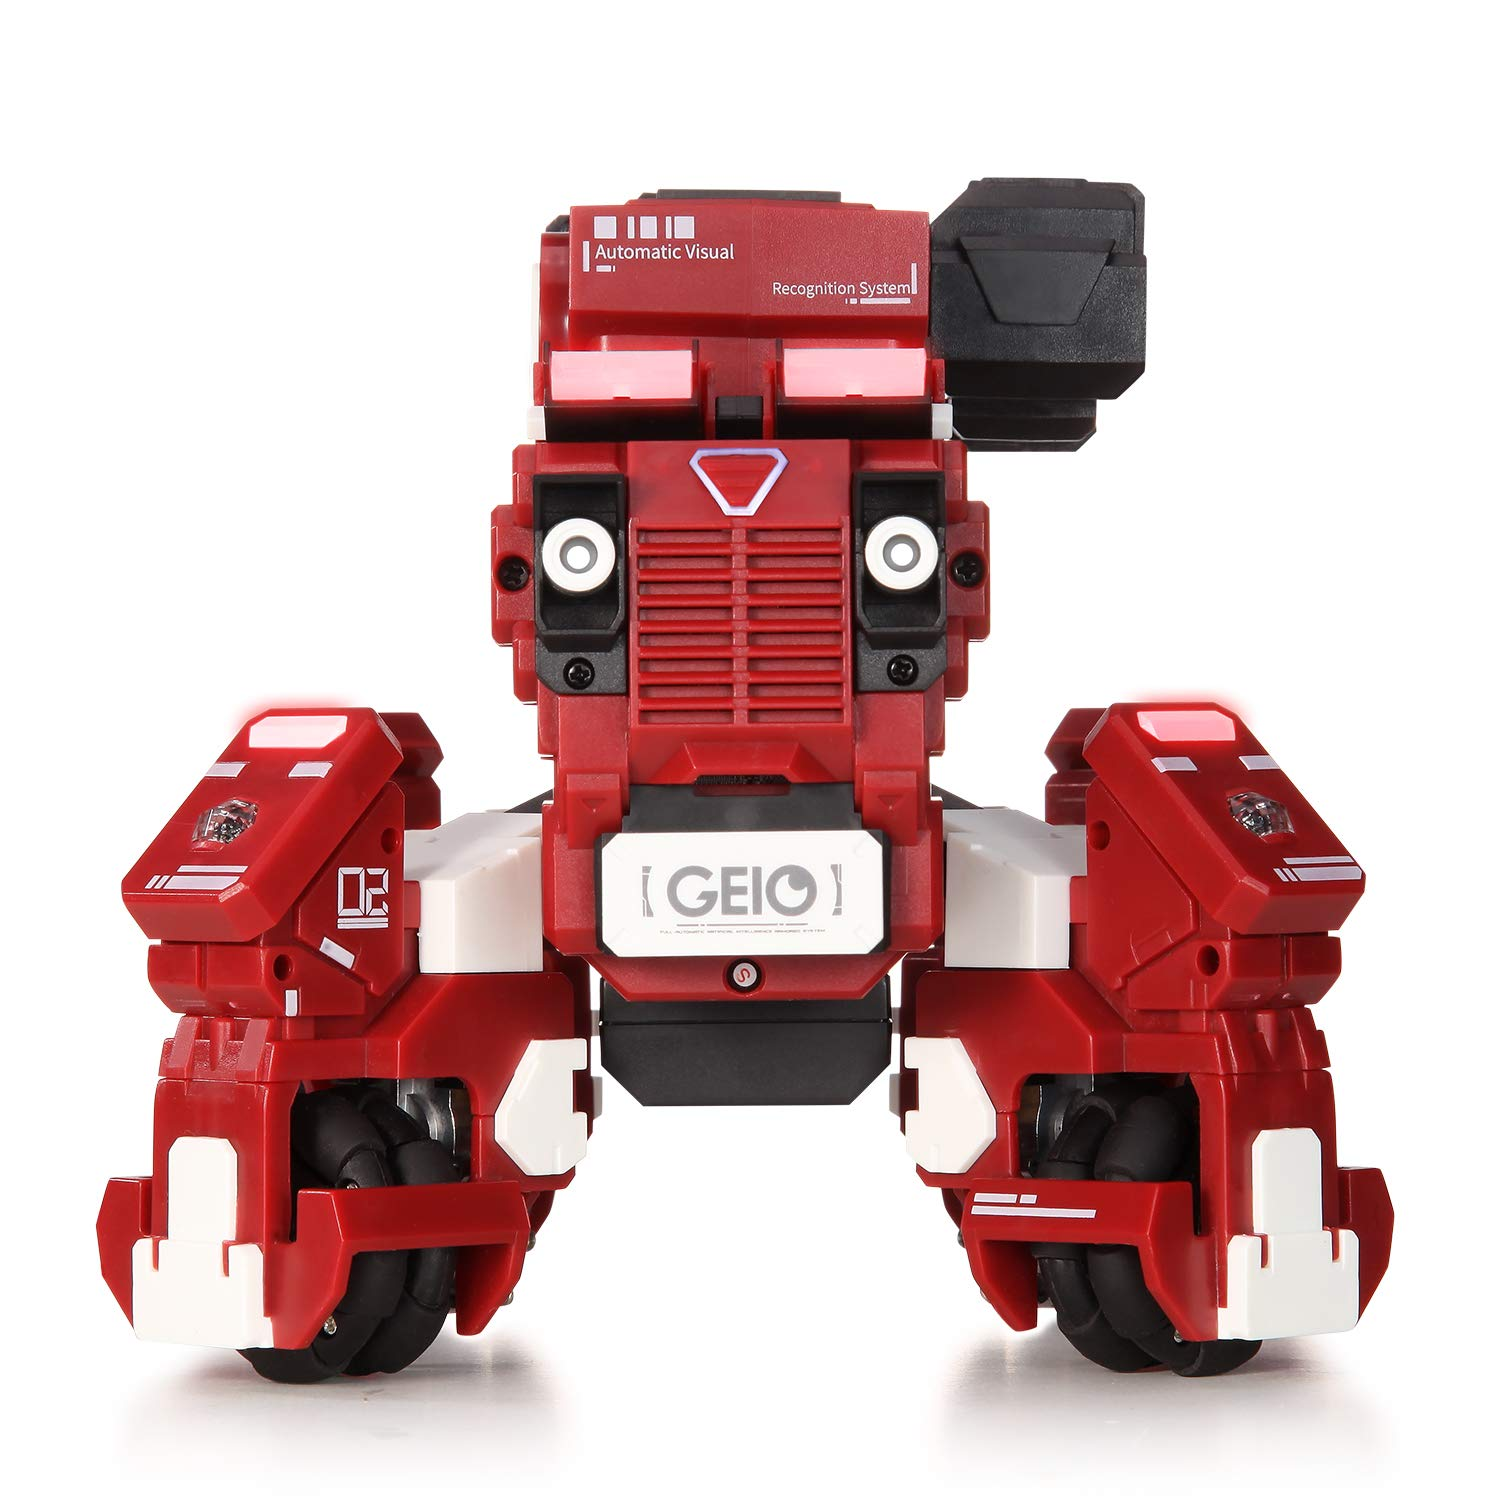 GJS Robot - GEIO App-Enabled Augmented Reality Gaming Robot with High Speed Motion System, Multi-Player Battle Mode and STEM Coding Interface, Red by GJS Robot (Image #4)